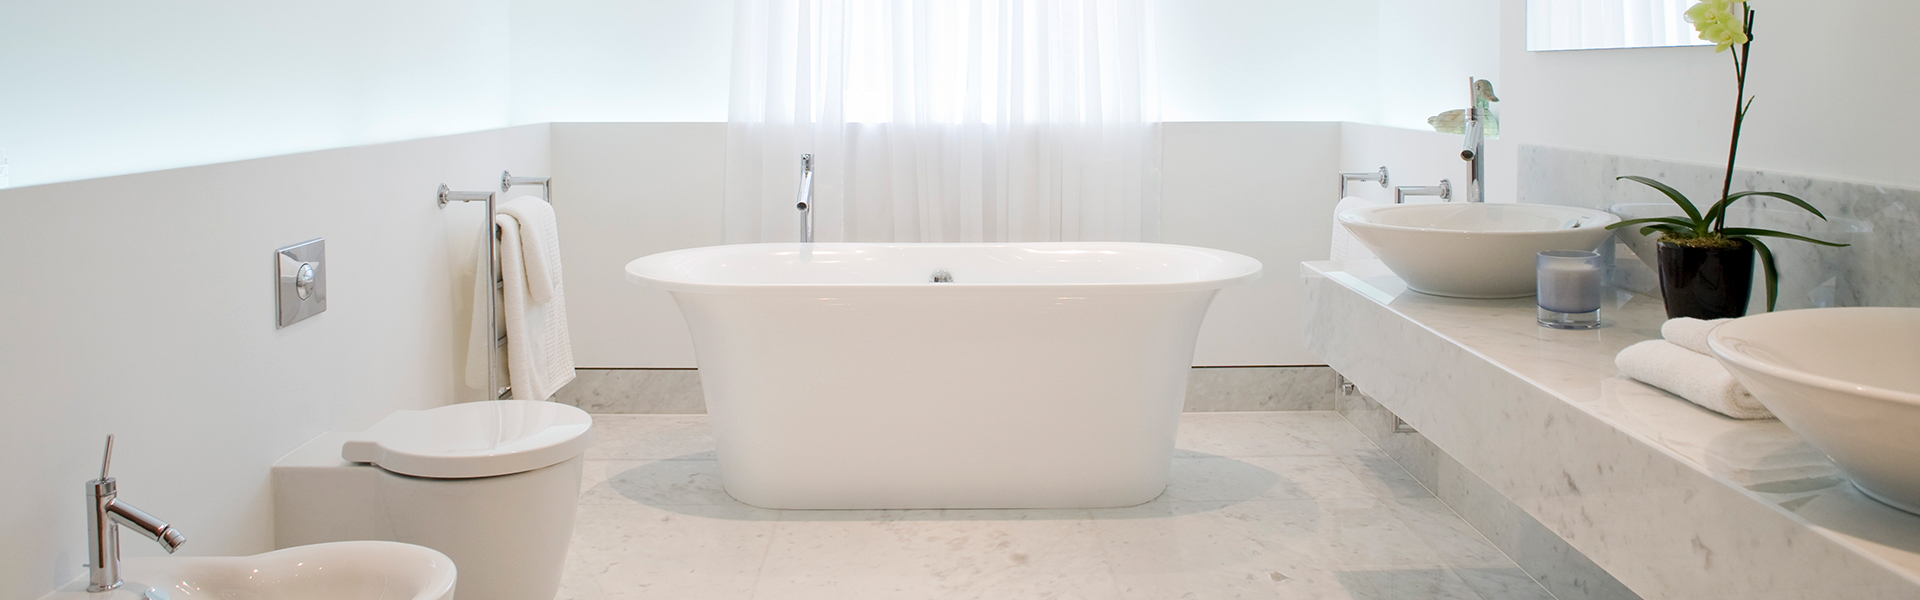 Rusco Bathrooms And Kitchens Birminghams Kitchen Installers - Local bathroom installers